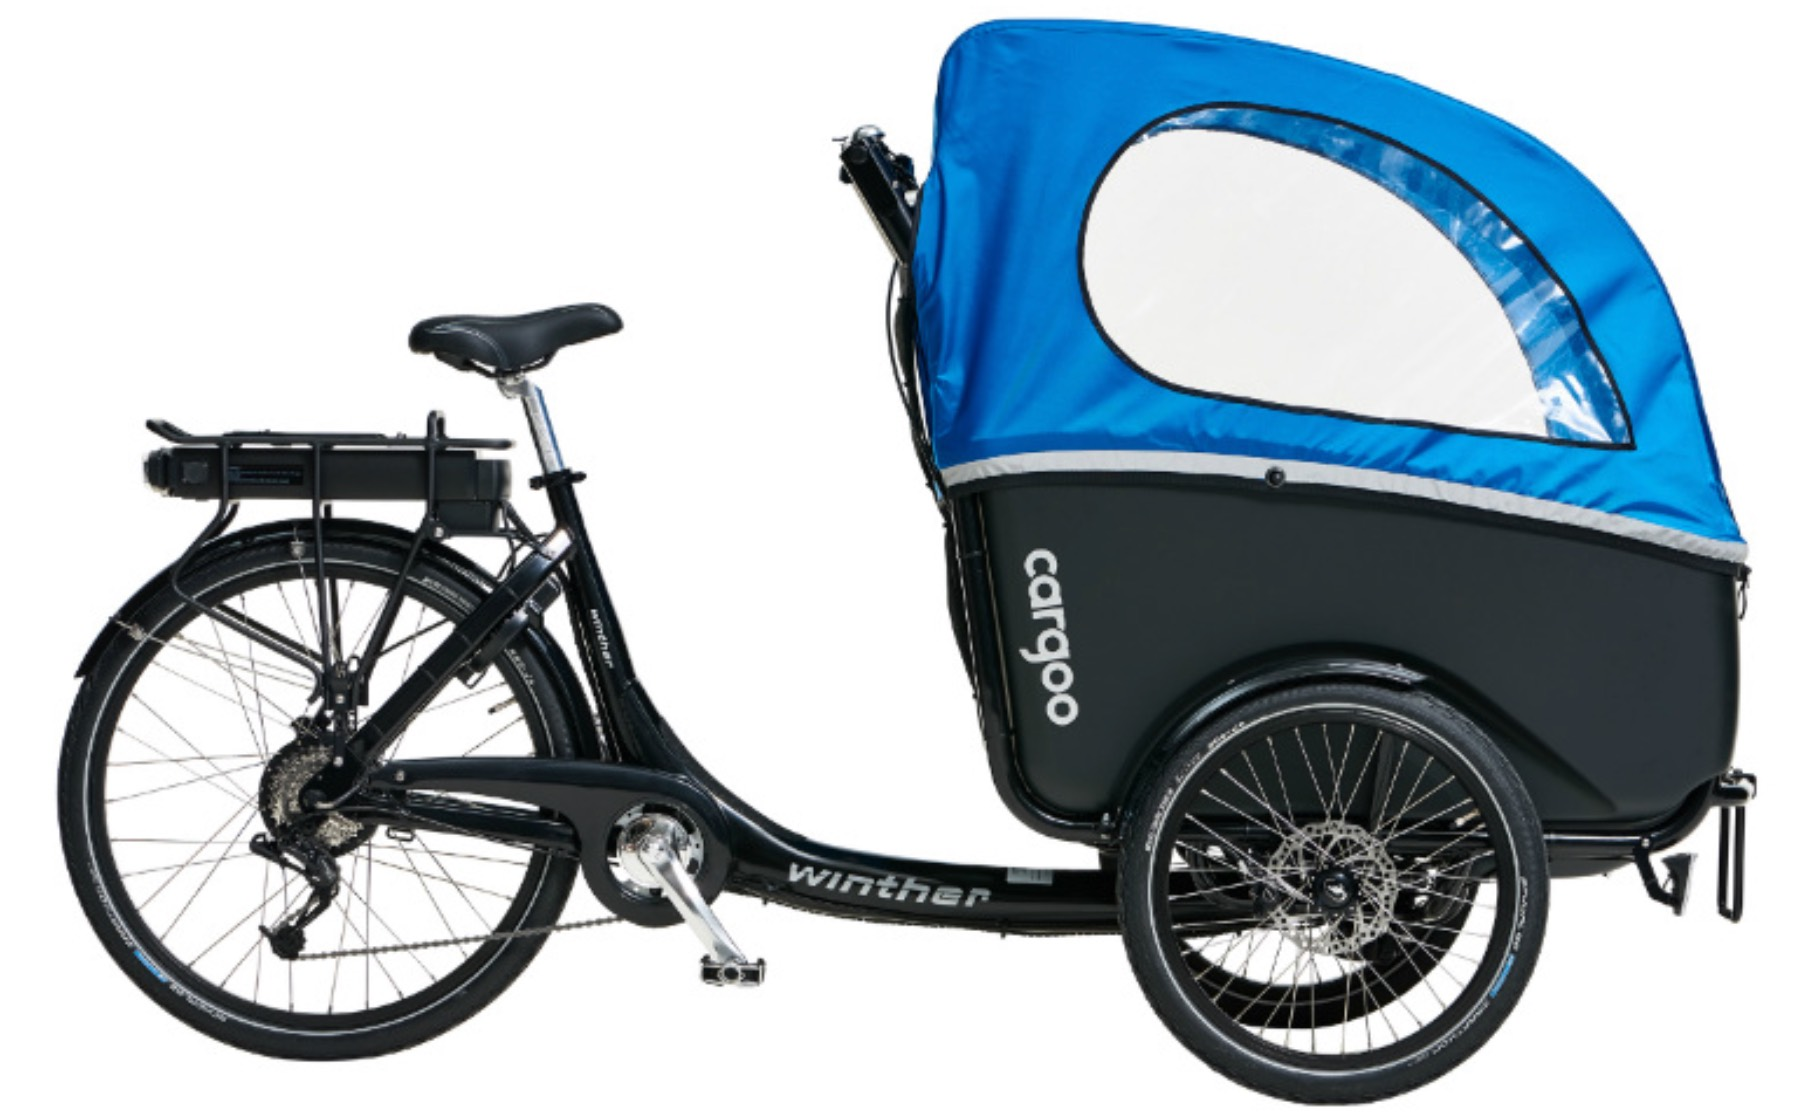 winther Cargoo E-Bikes